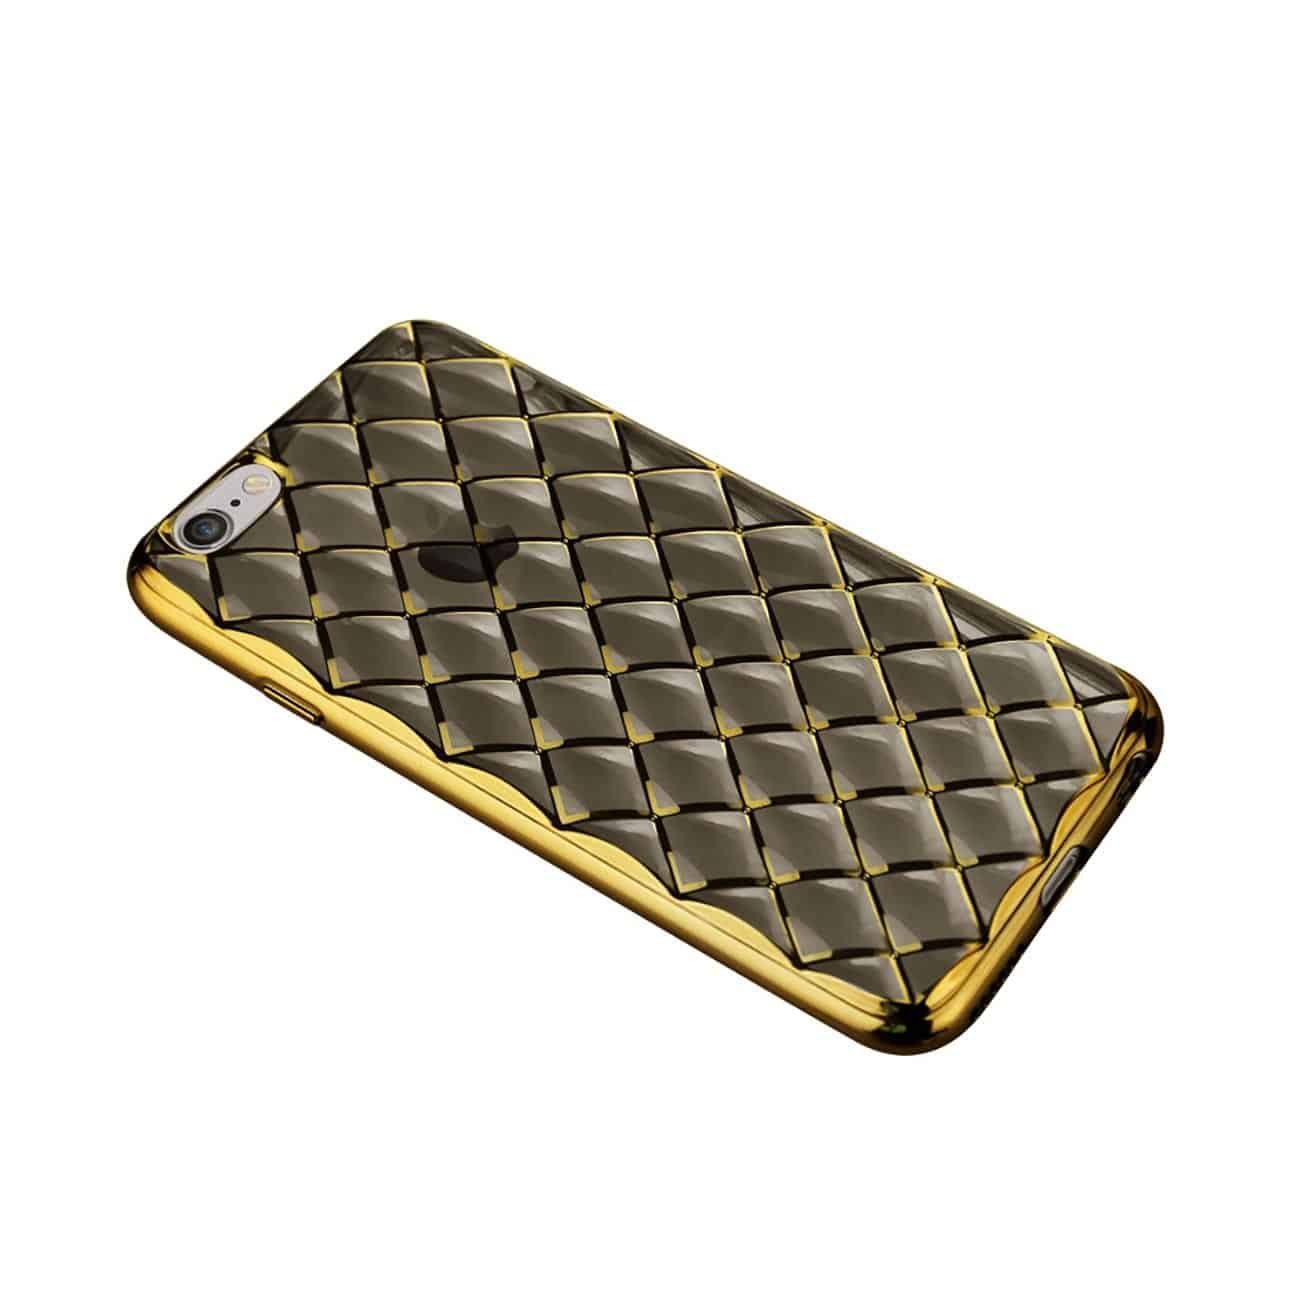 IPHONE 6S FLEXIBLE 3D RHOMBUS PATTERN TPU CASE WITH SHINY FRAME IN BLACK